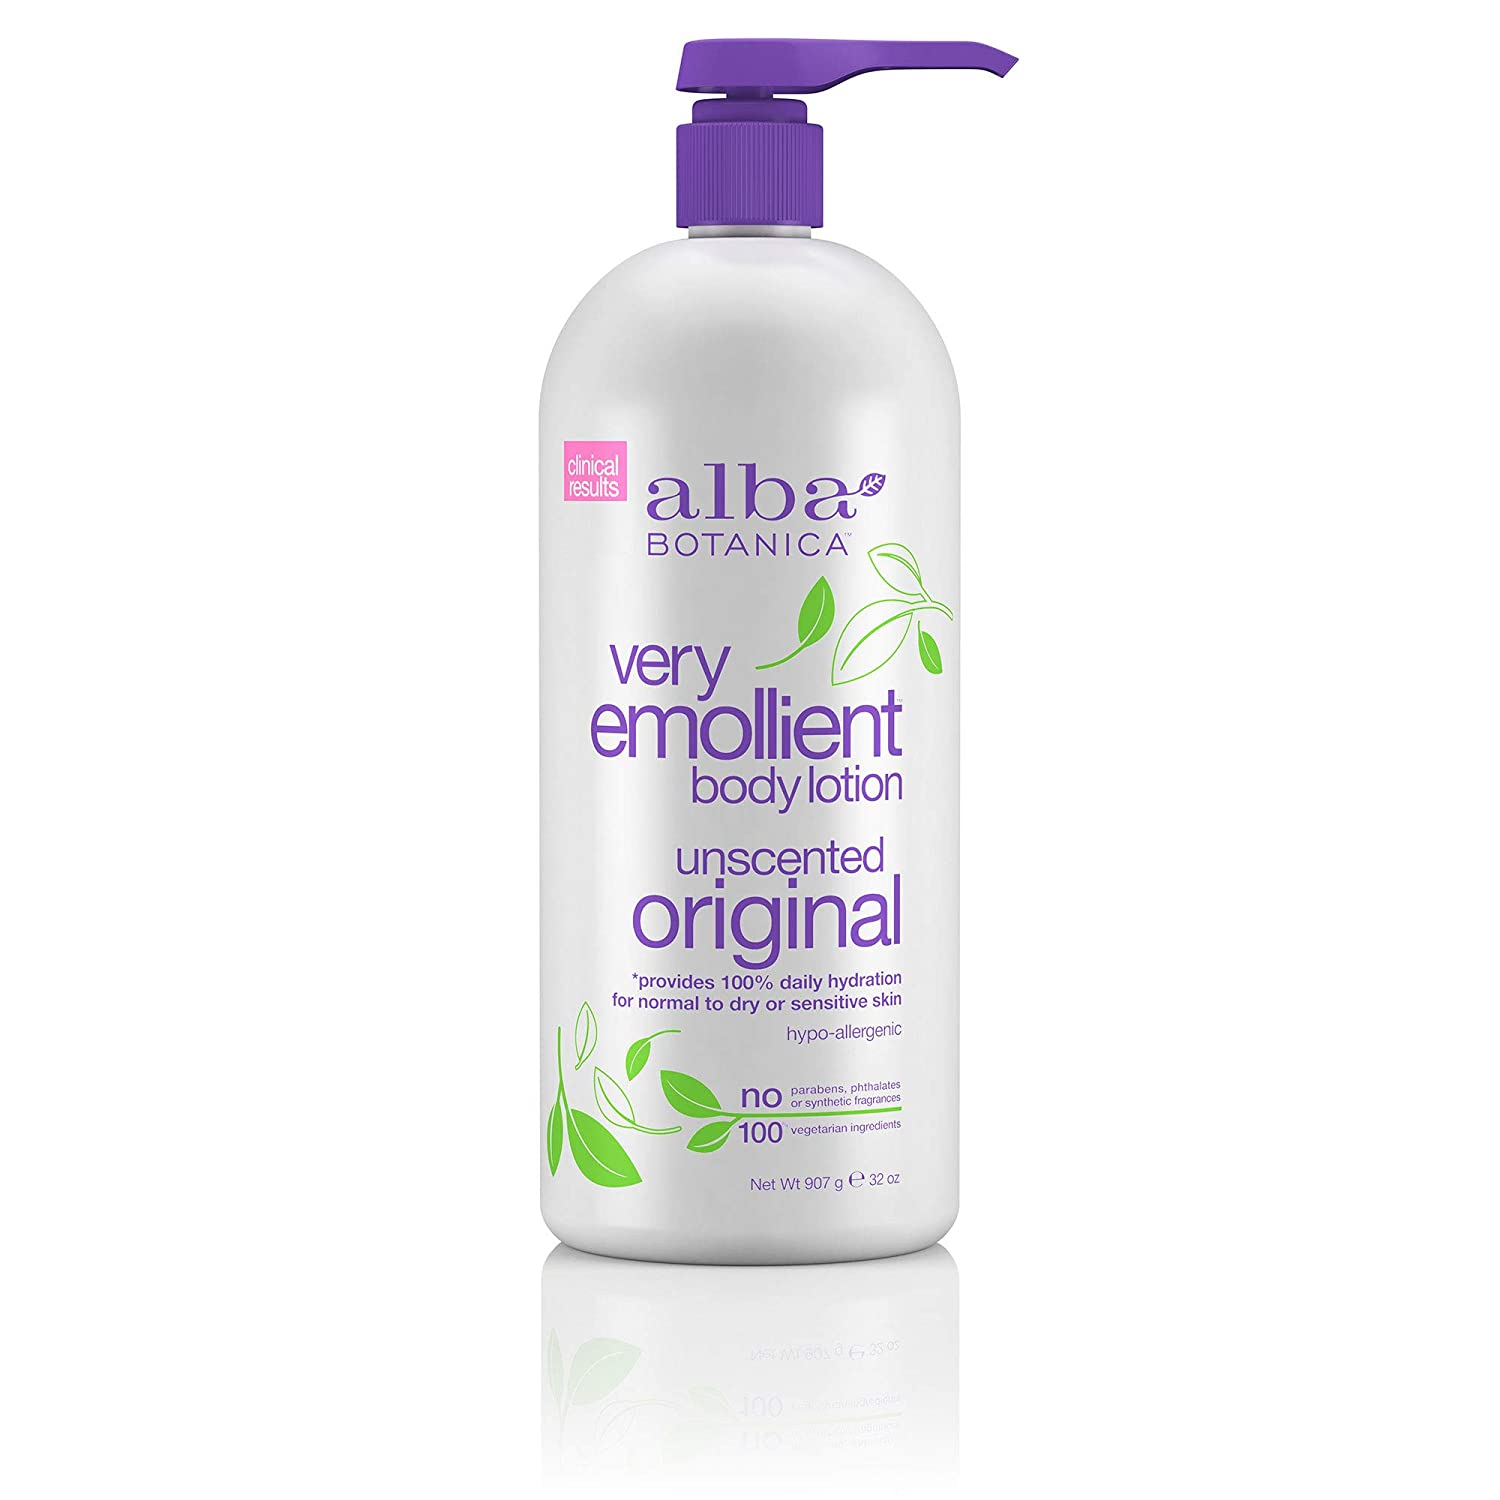 Alba Botanica Very Emollient, Unscented Body Lotion